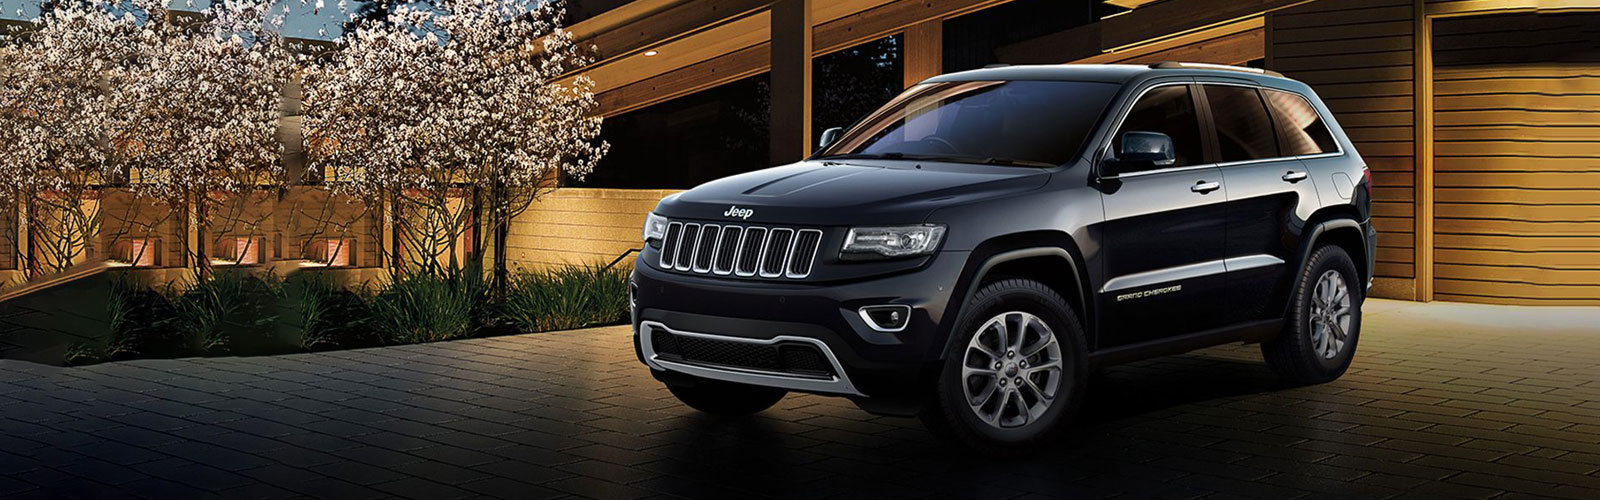 PPS Jeep - Grand Cherokee Black on Road